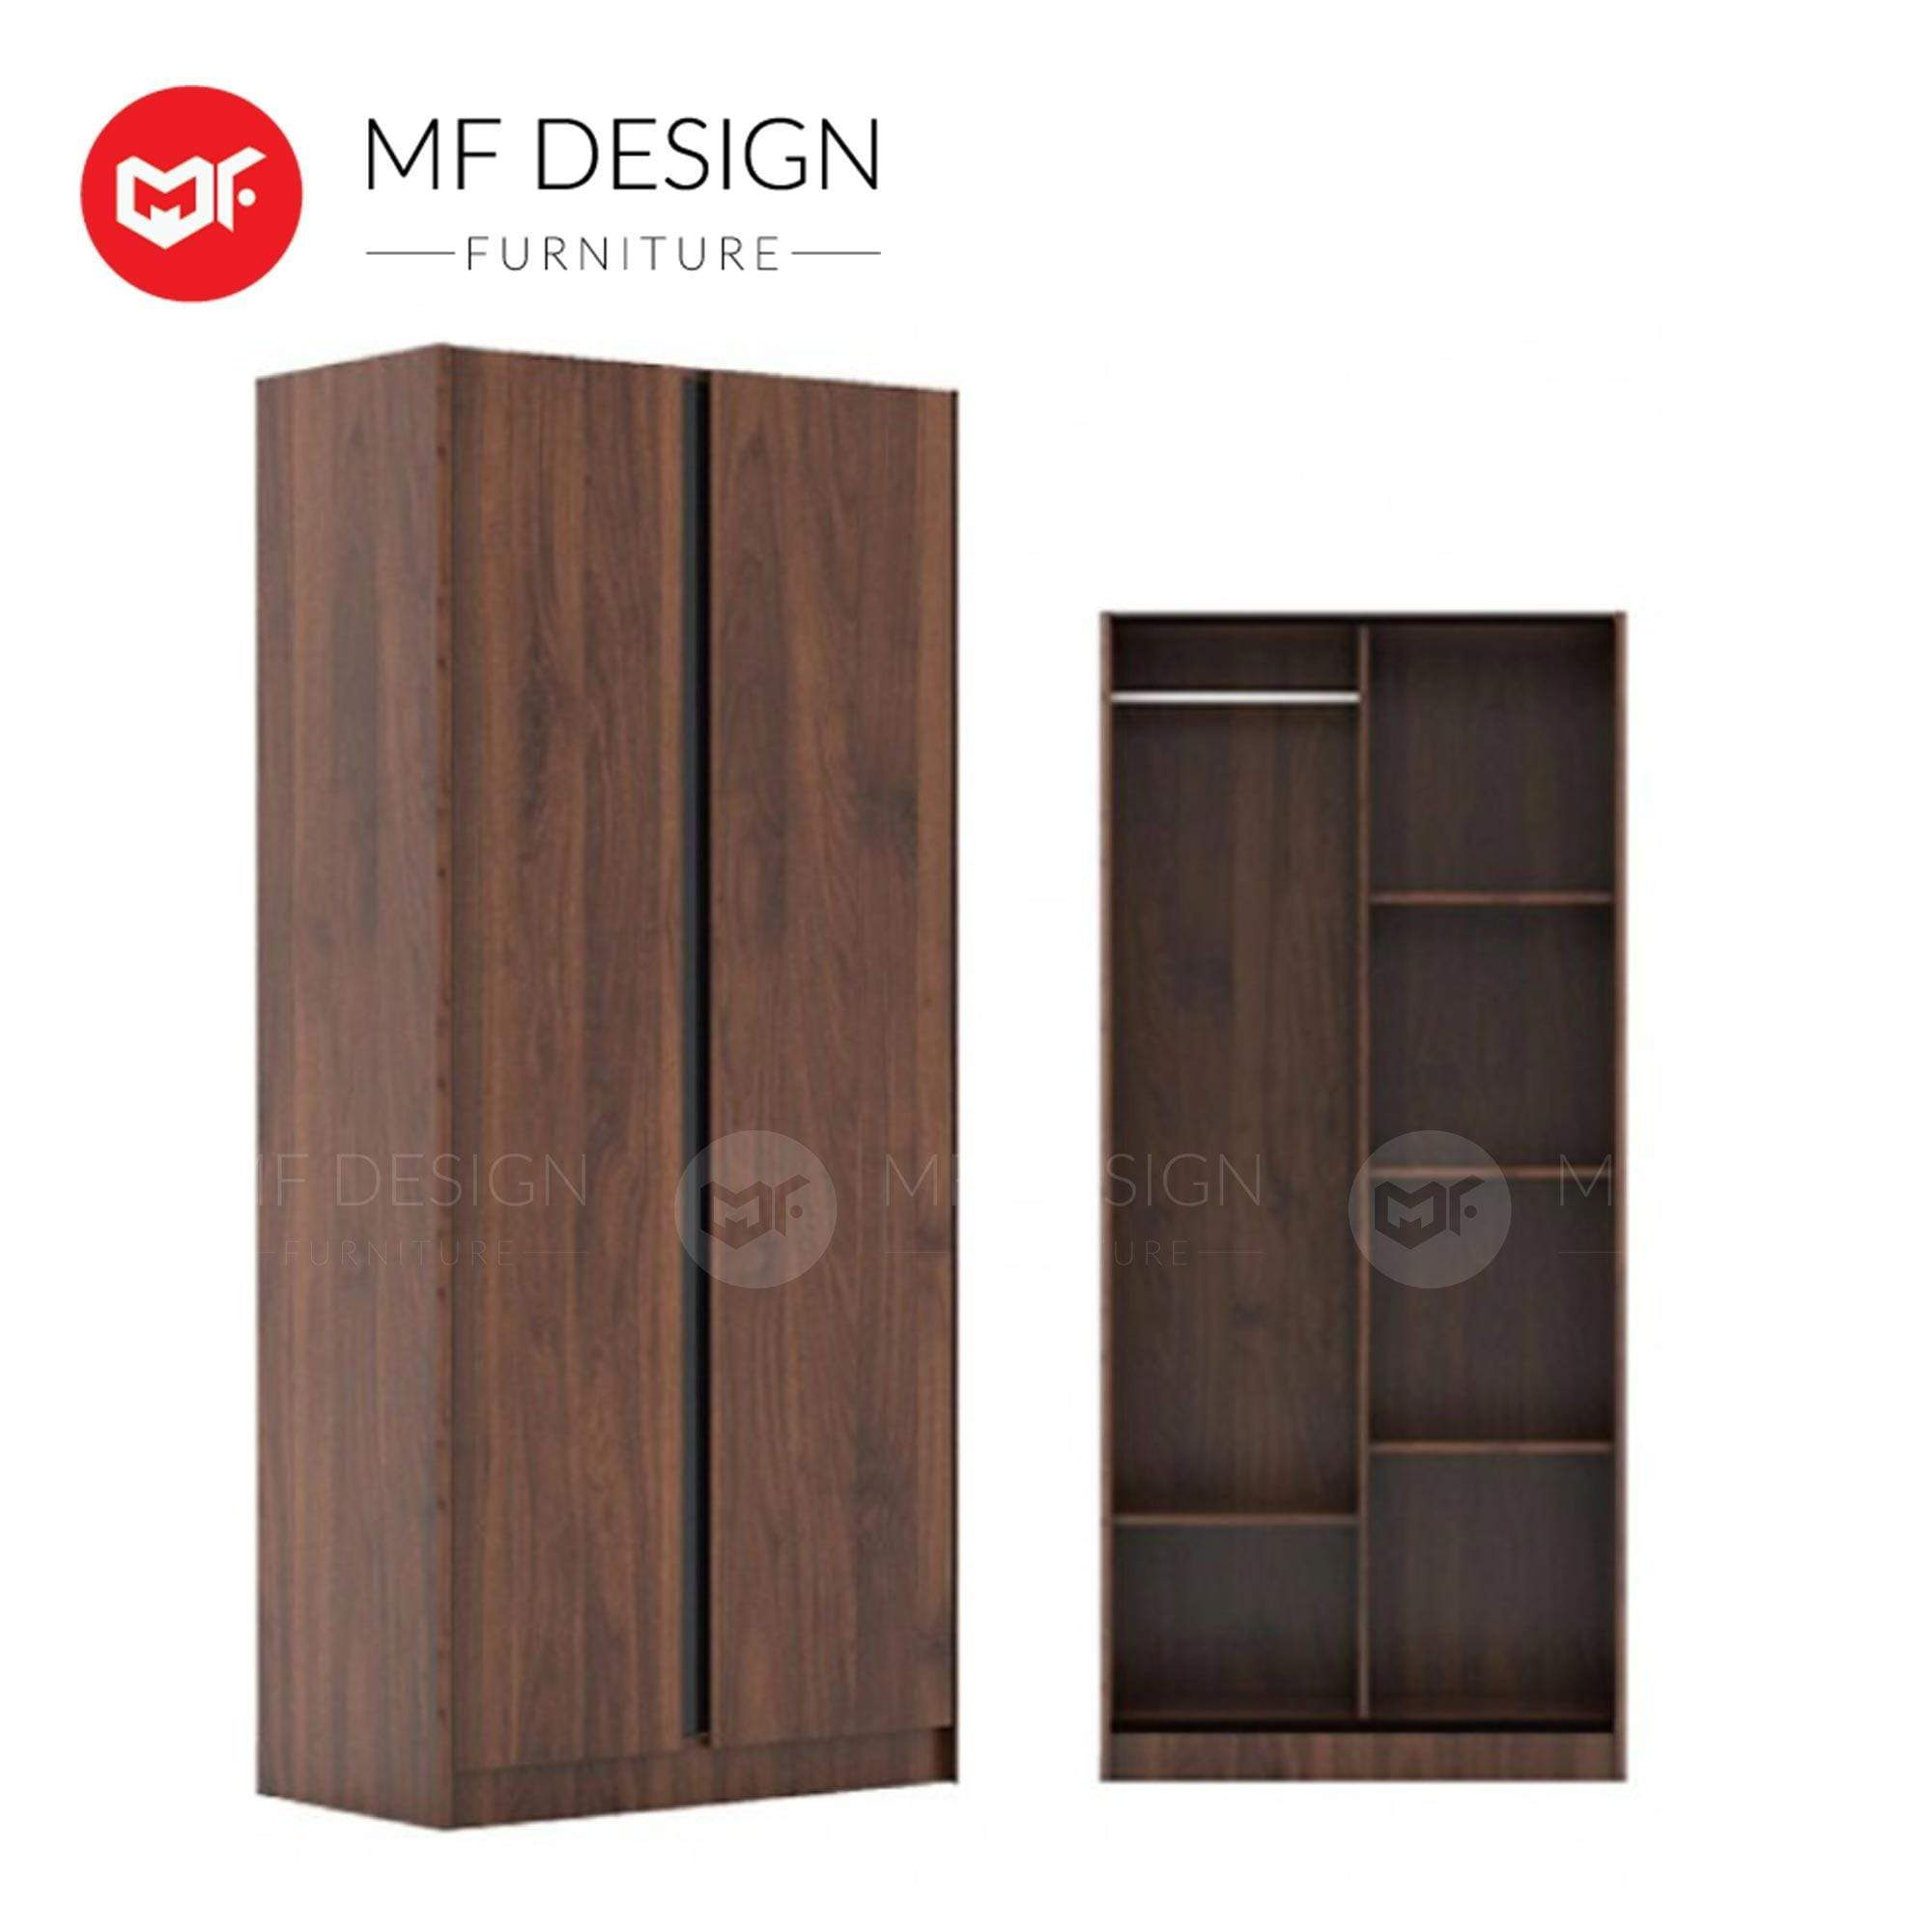 mfdesign88 wardrobe MF DESIGN ADAM 2 DOOR WARDROBE WITH SIDE SLADE / ALMARI BAJU / 2 PINTU / BROWN / L 810 X W 430 X H 1800 MM